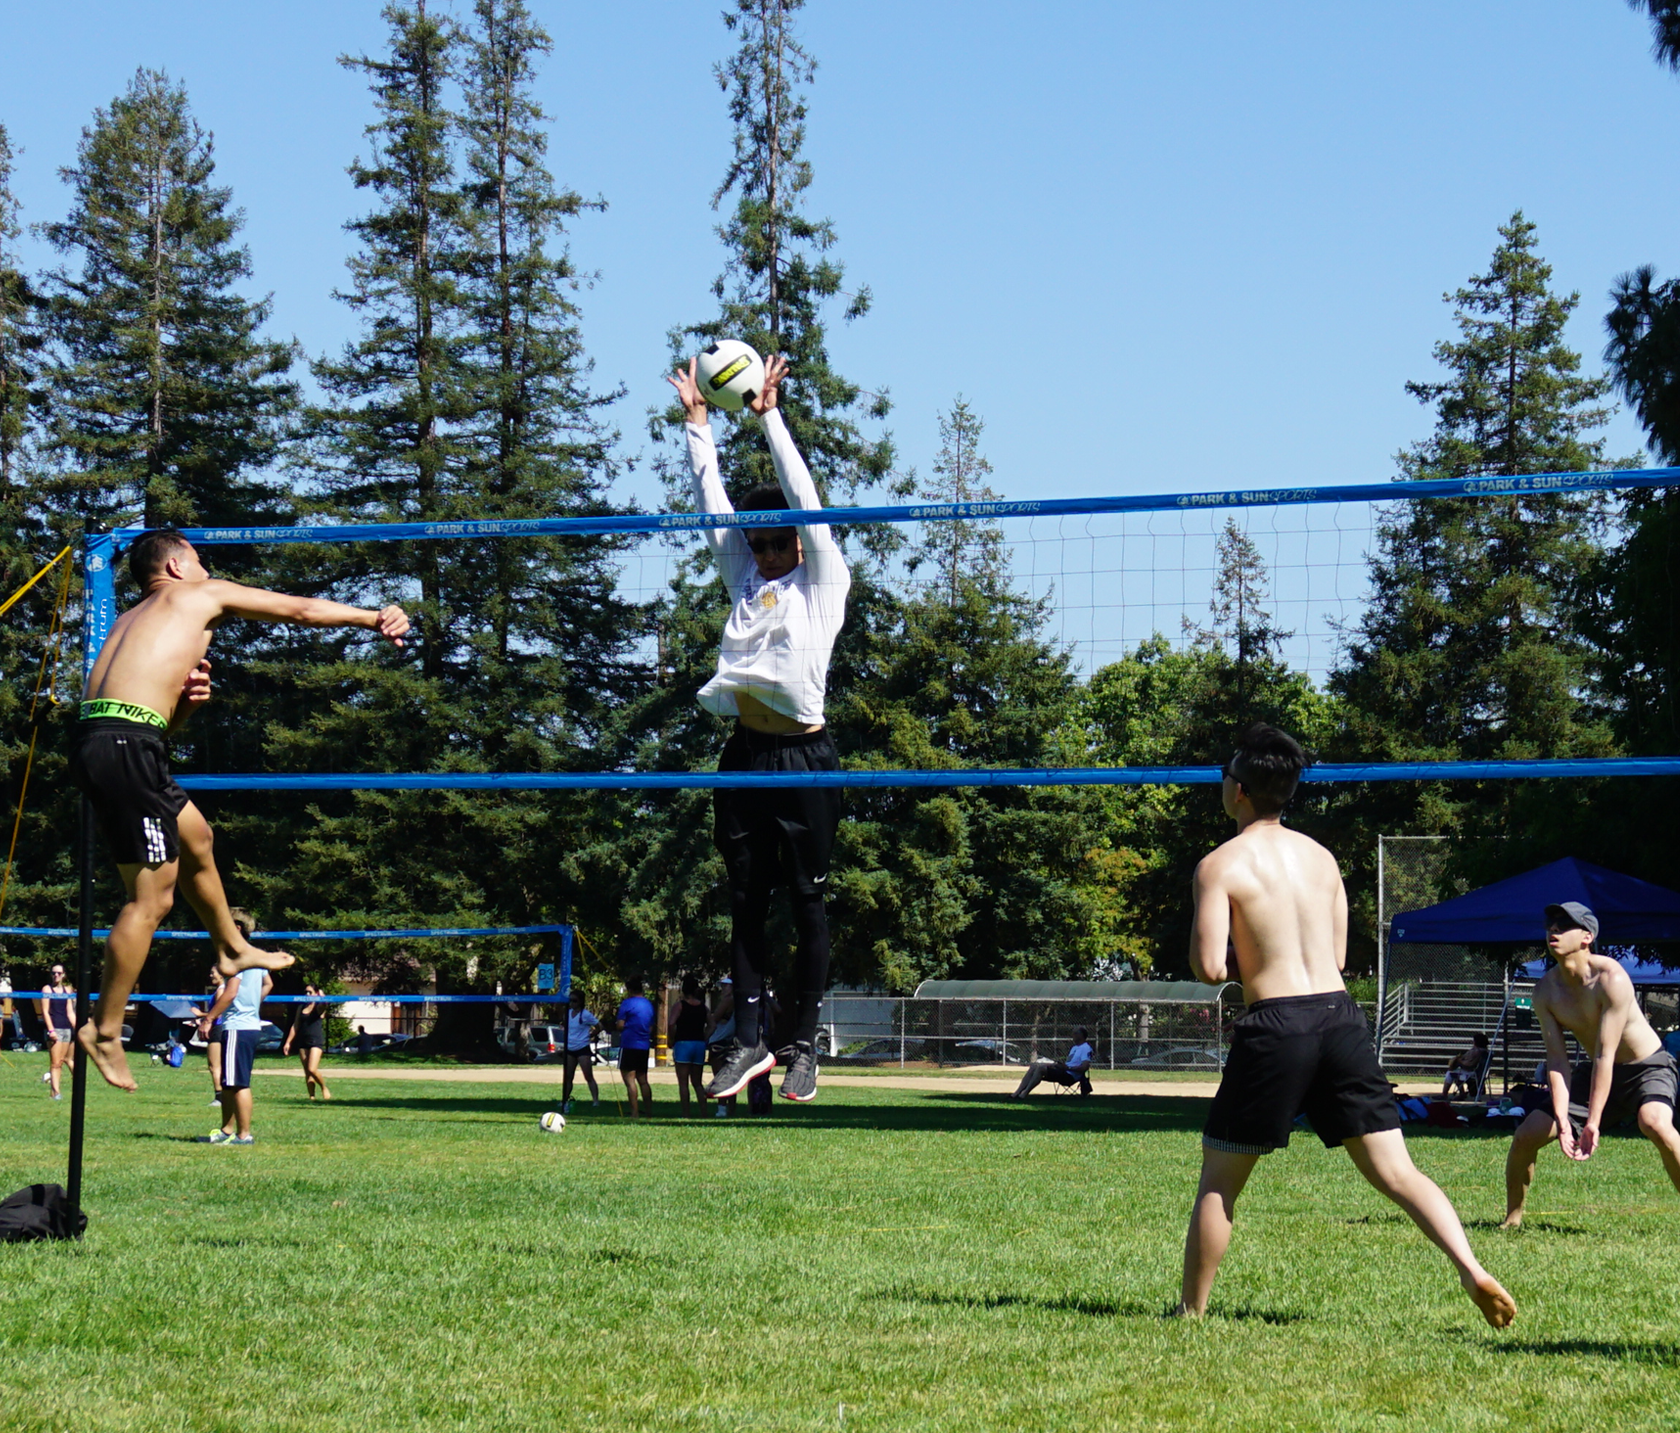 Park and Sports Blue Spectrum Classic Grass Volleyball Action Shot The League Sports San Francisco